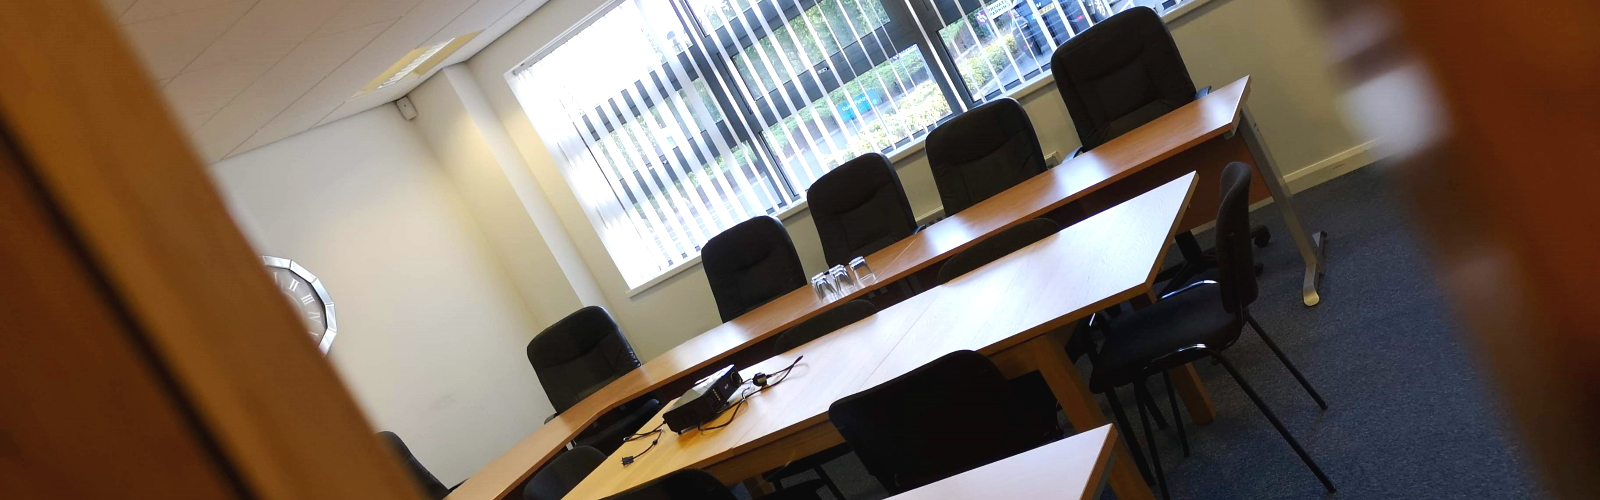 Durham Suite conference room at Durham Office Services